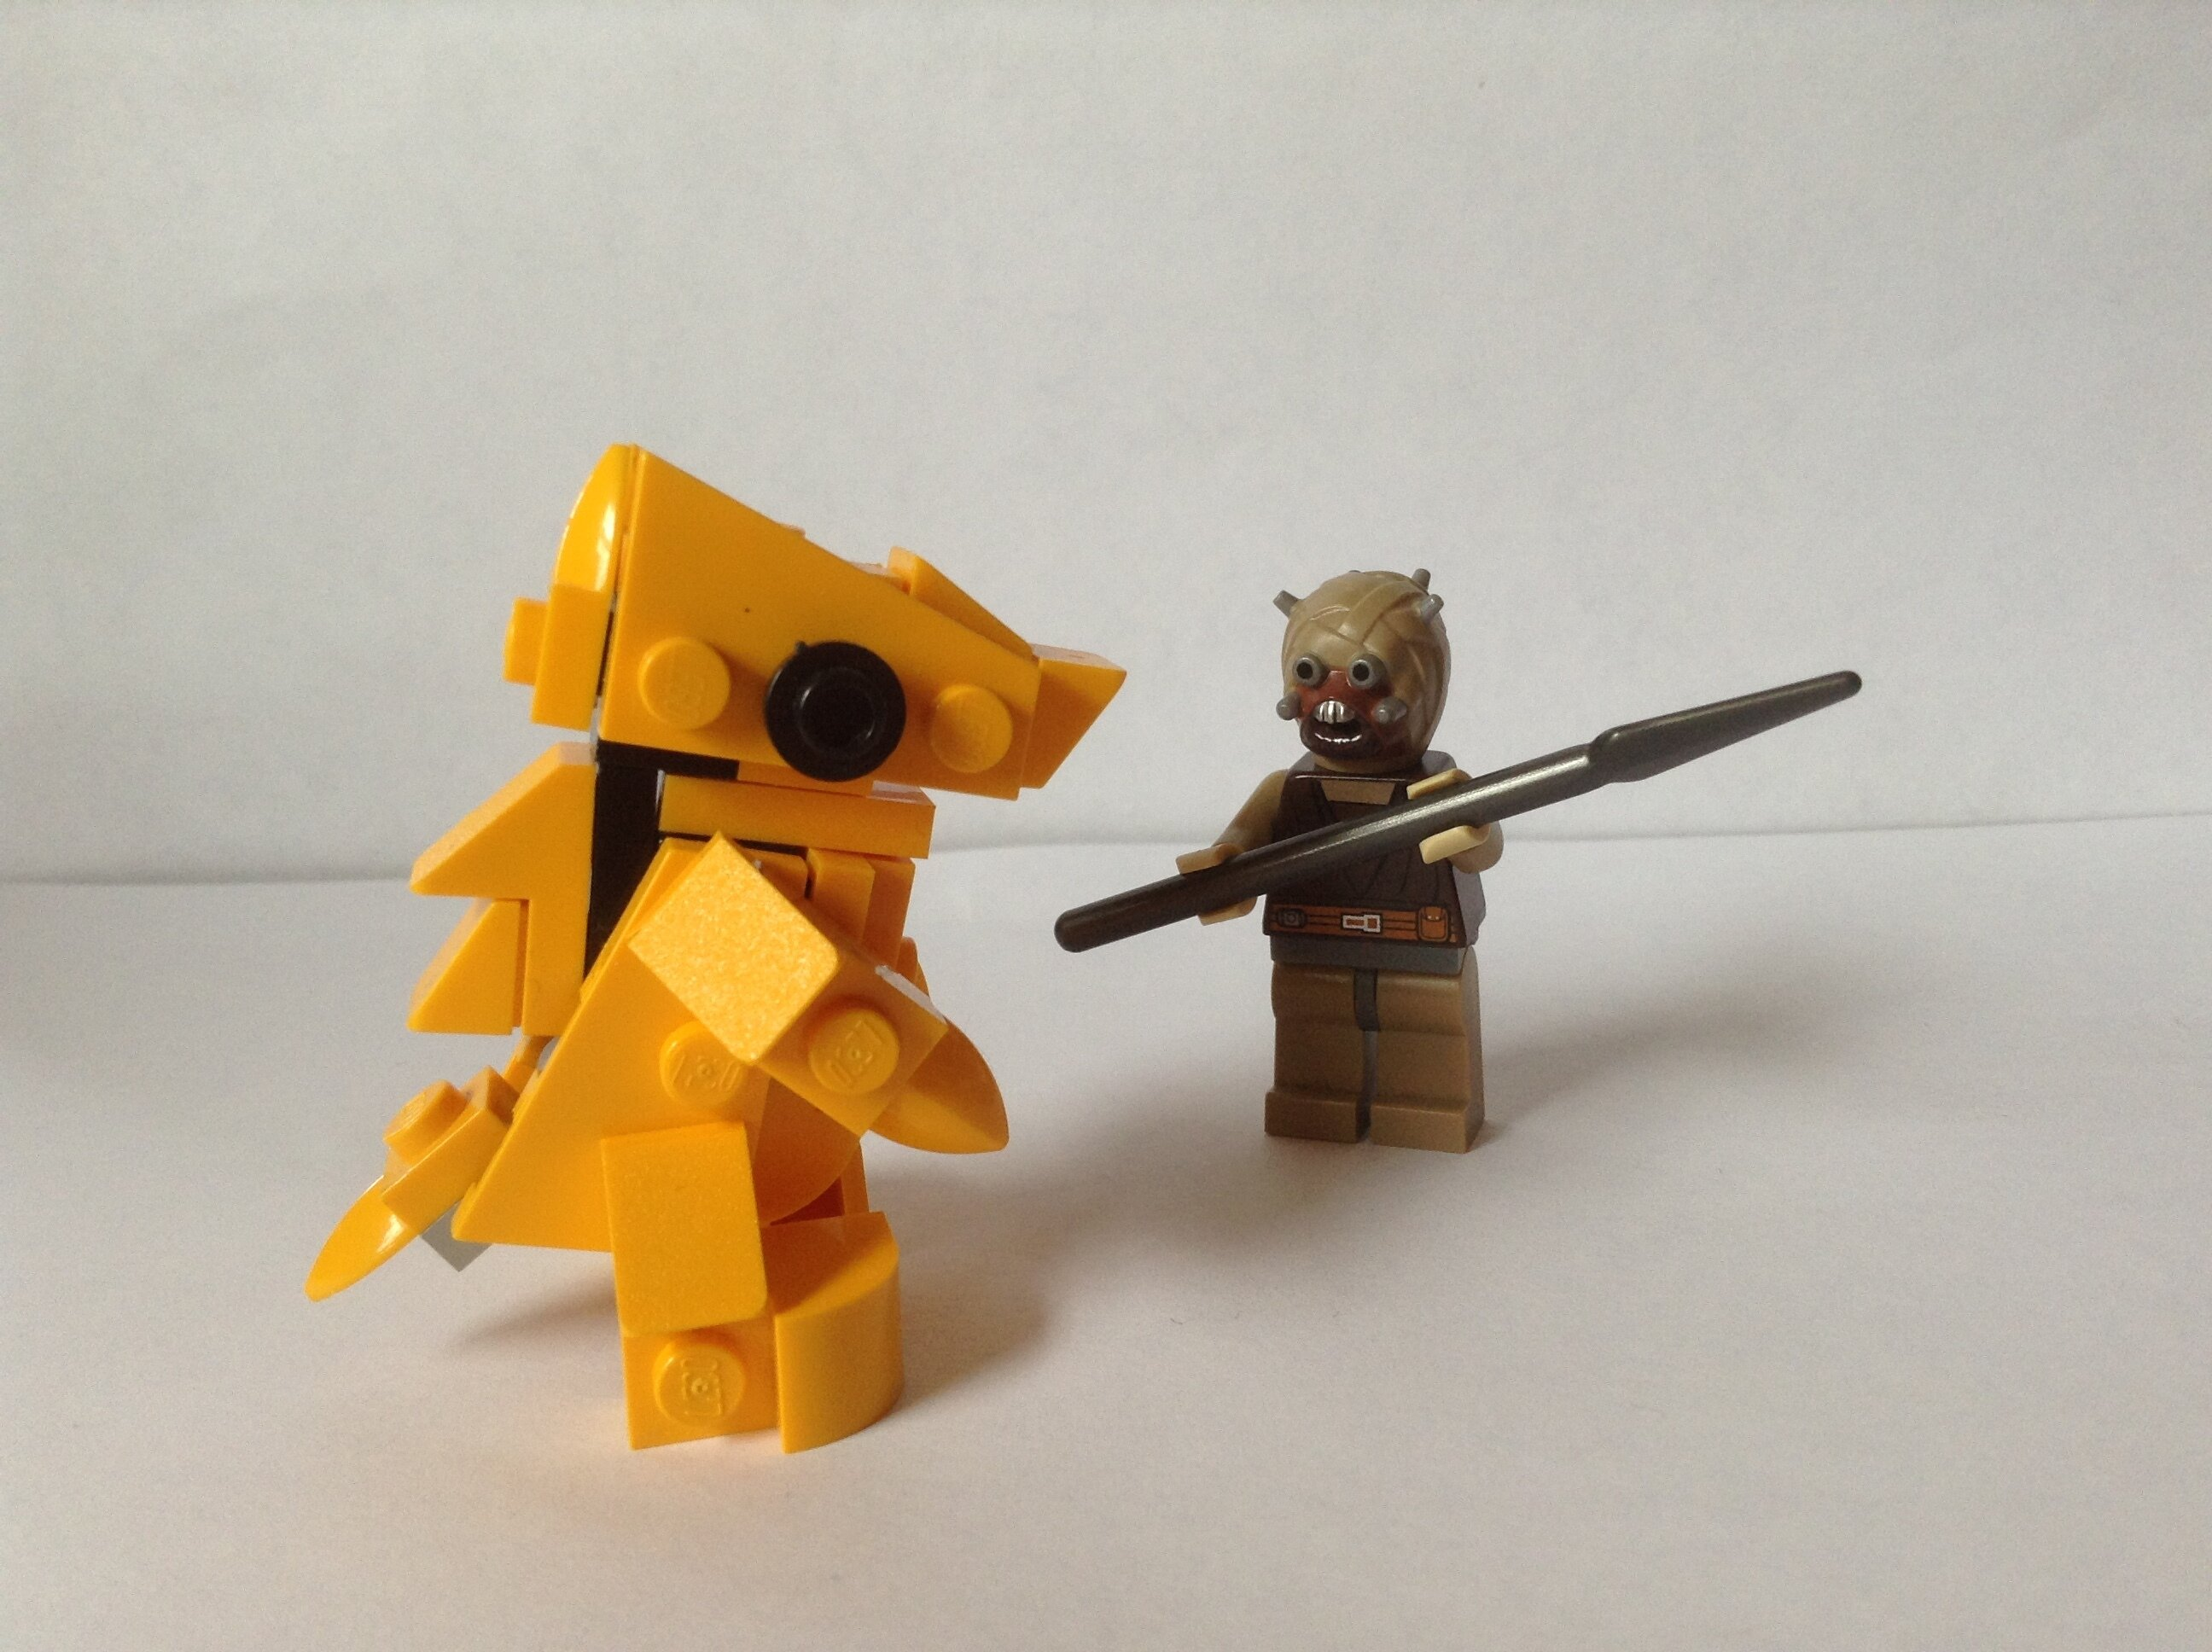 Star Wars Womp Rat Lego Creations The Ttv Message Boards The dynamics of a son and father from two generational #starwars perspectives collaborating together is a microcosm of. star wars womp rat lego creations